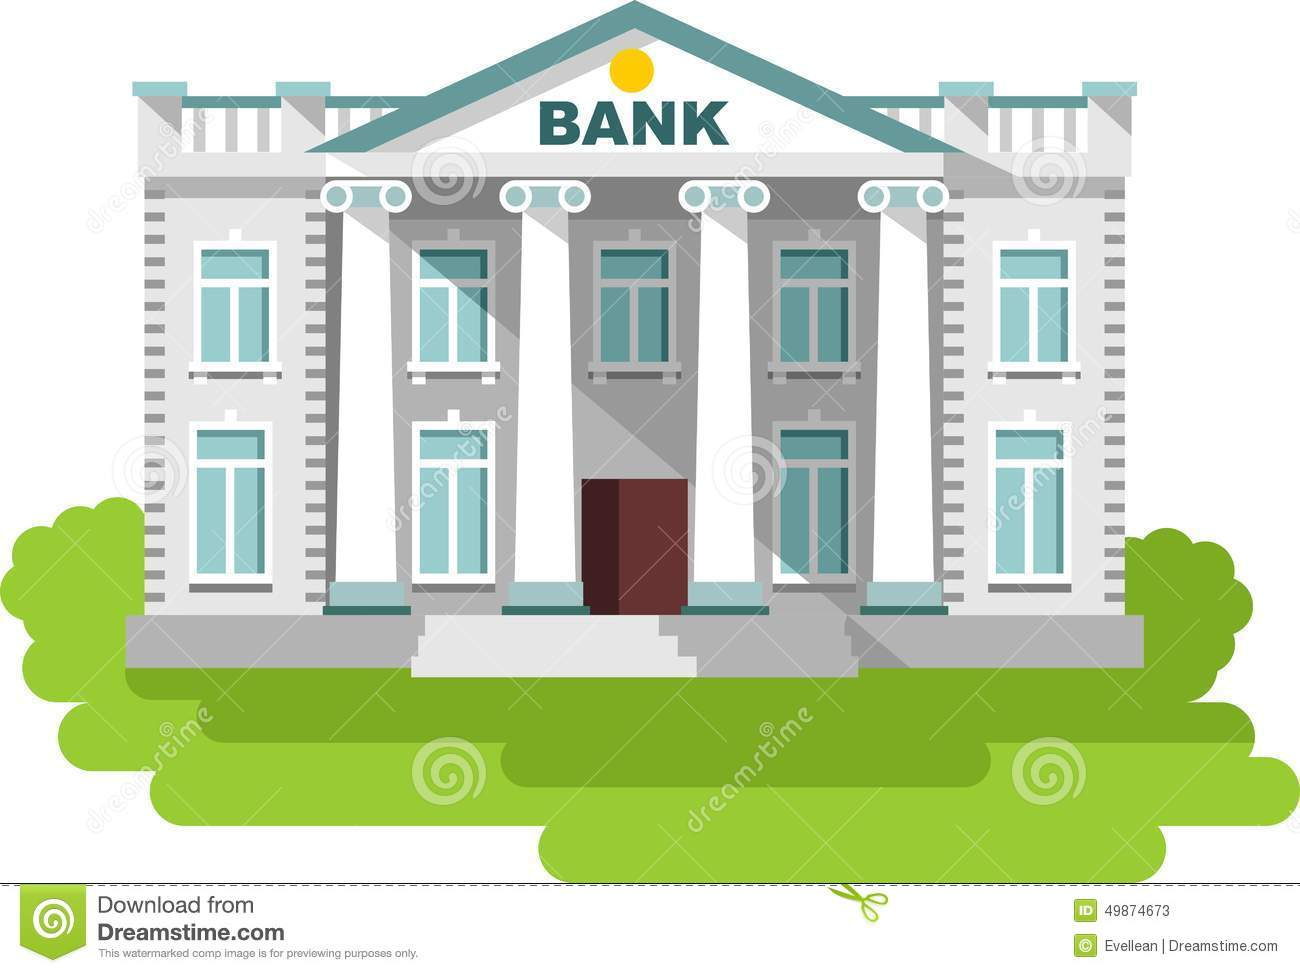 Green bank clipart transparent library Green bank clipart - ClipartFest transparent library